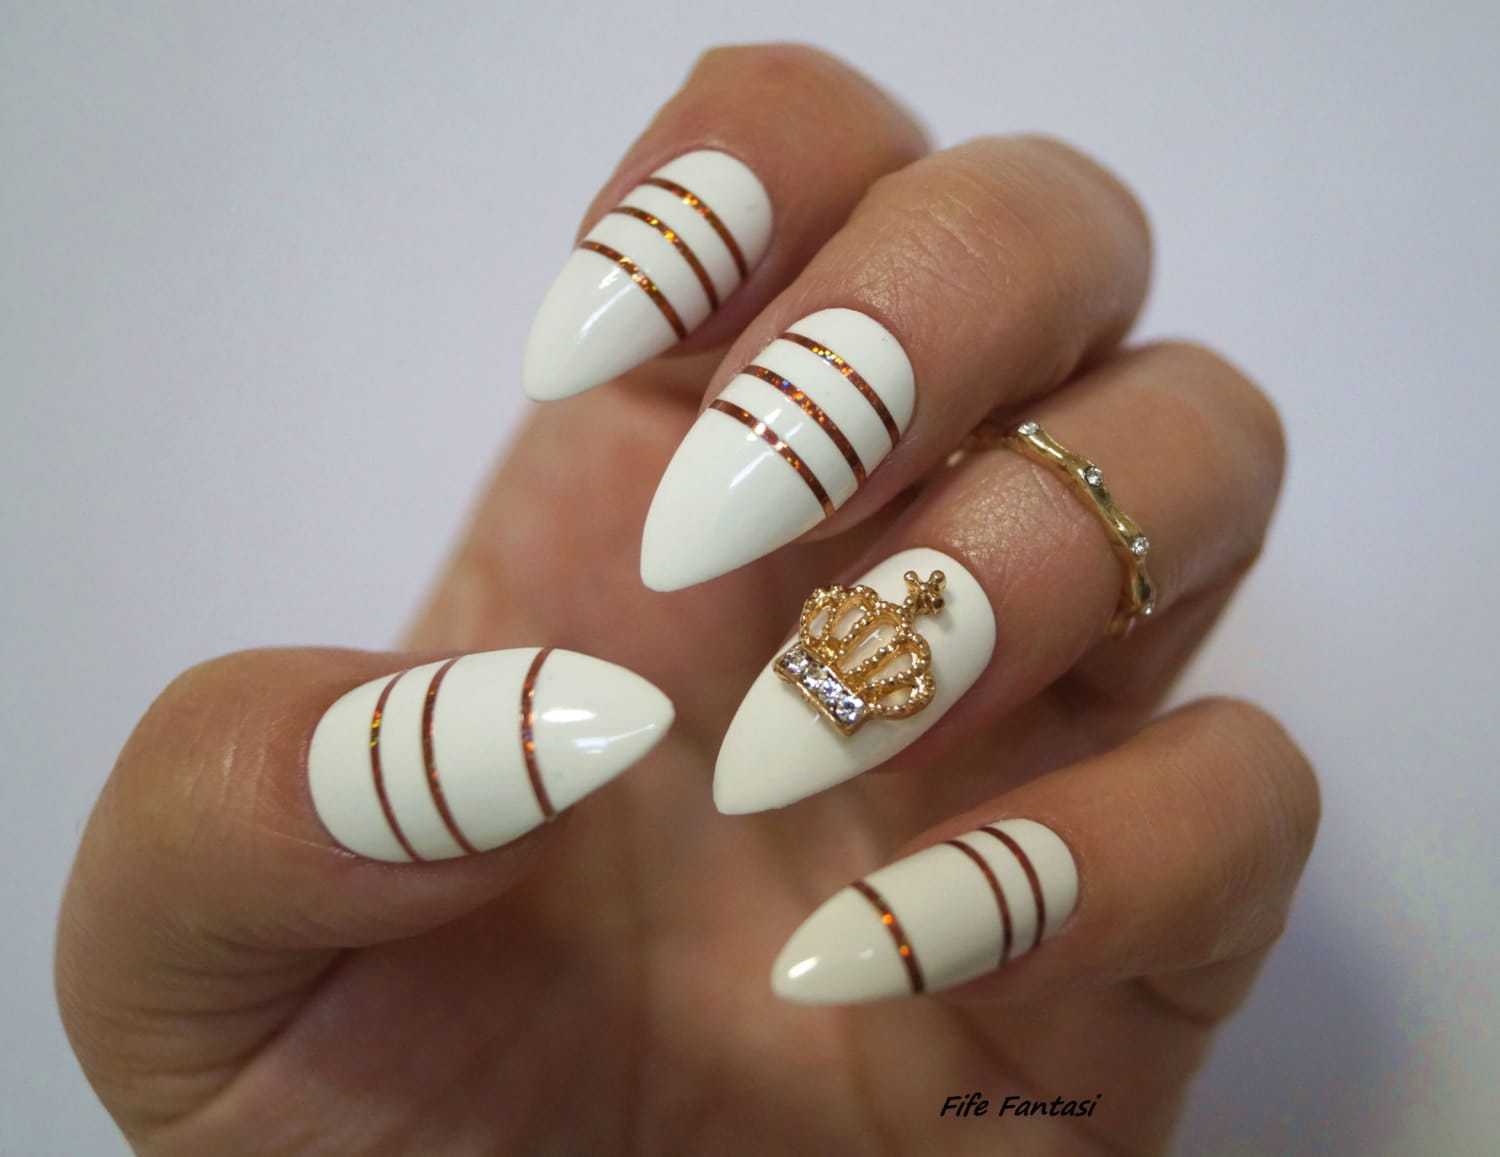 White Stiletto Nails, Nail art, Fake nails, Stiletto nails, Kylie ...